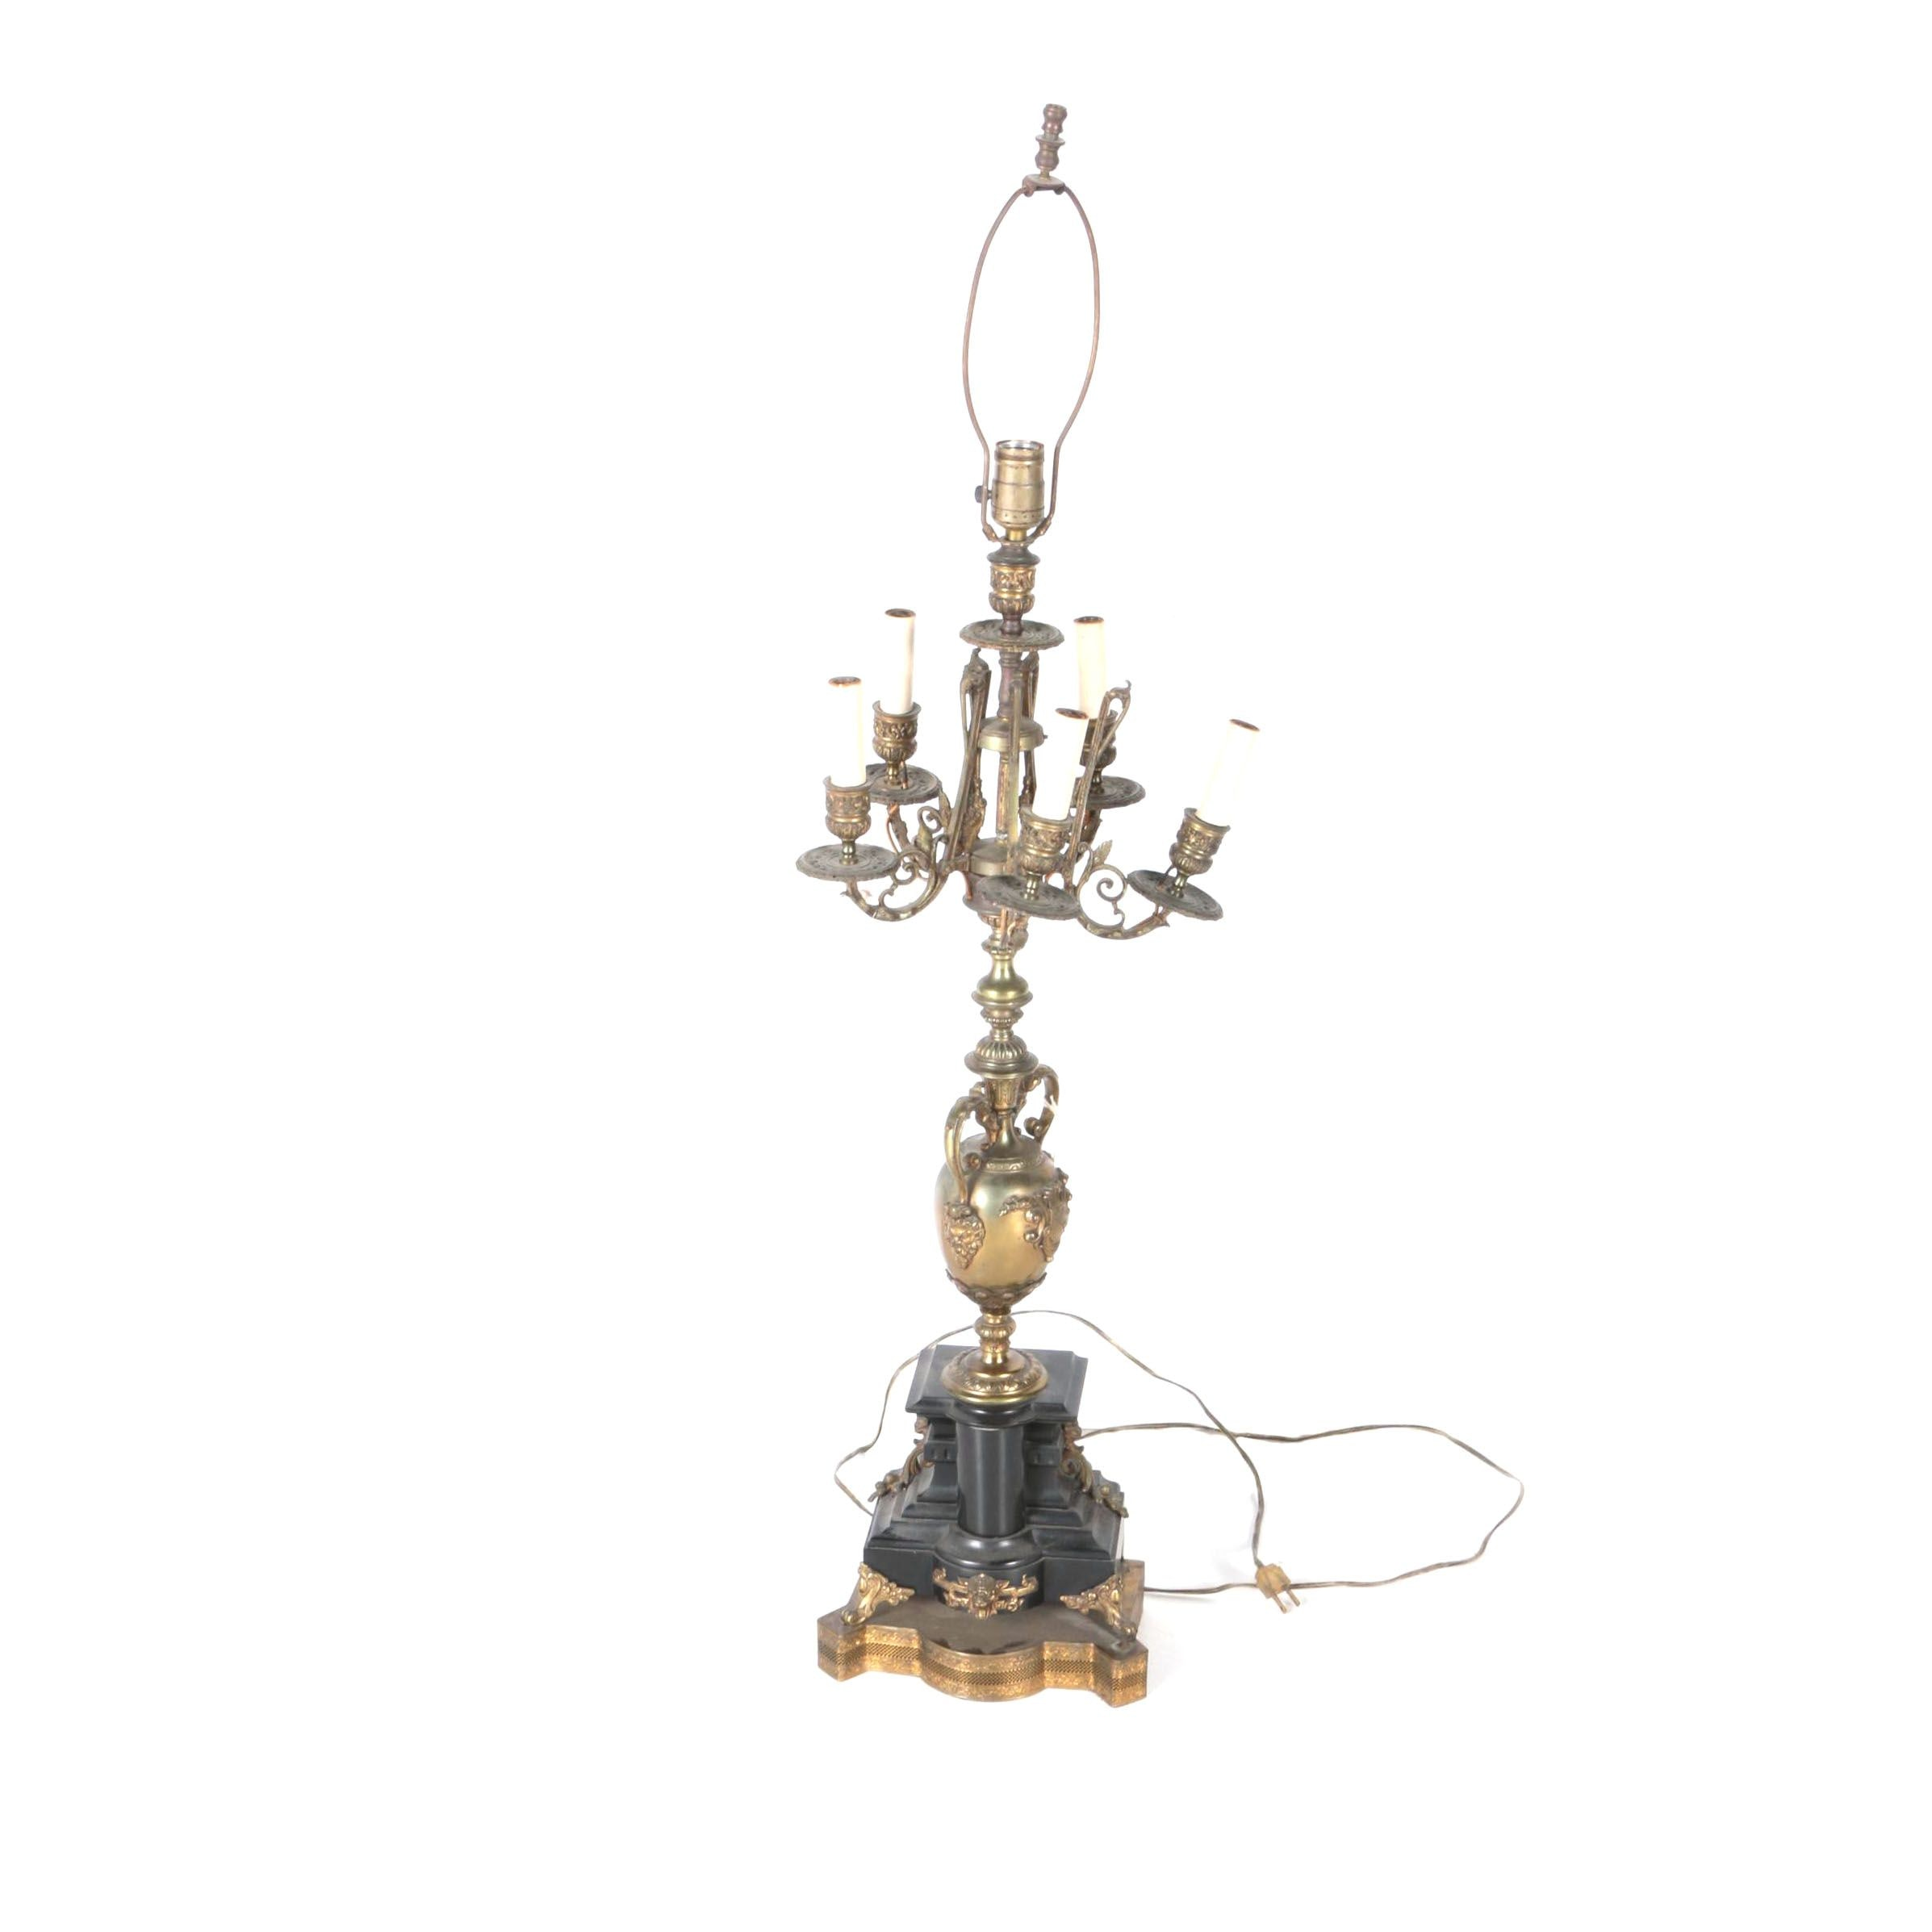 Ornate Neoclassical Style Candelabra Table Lamp